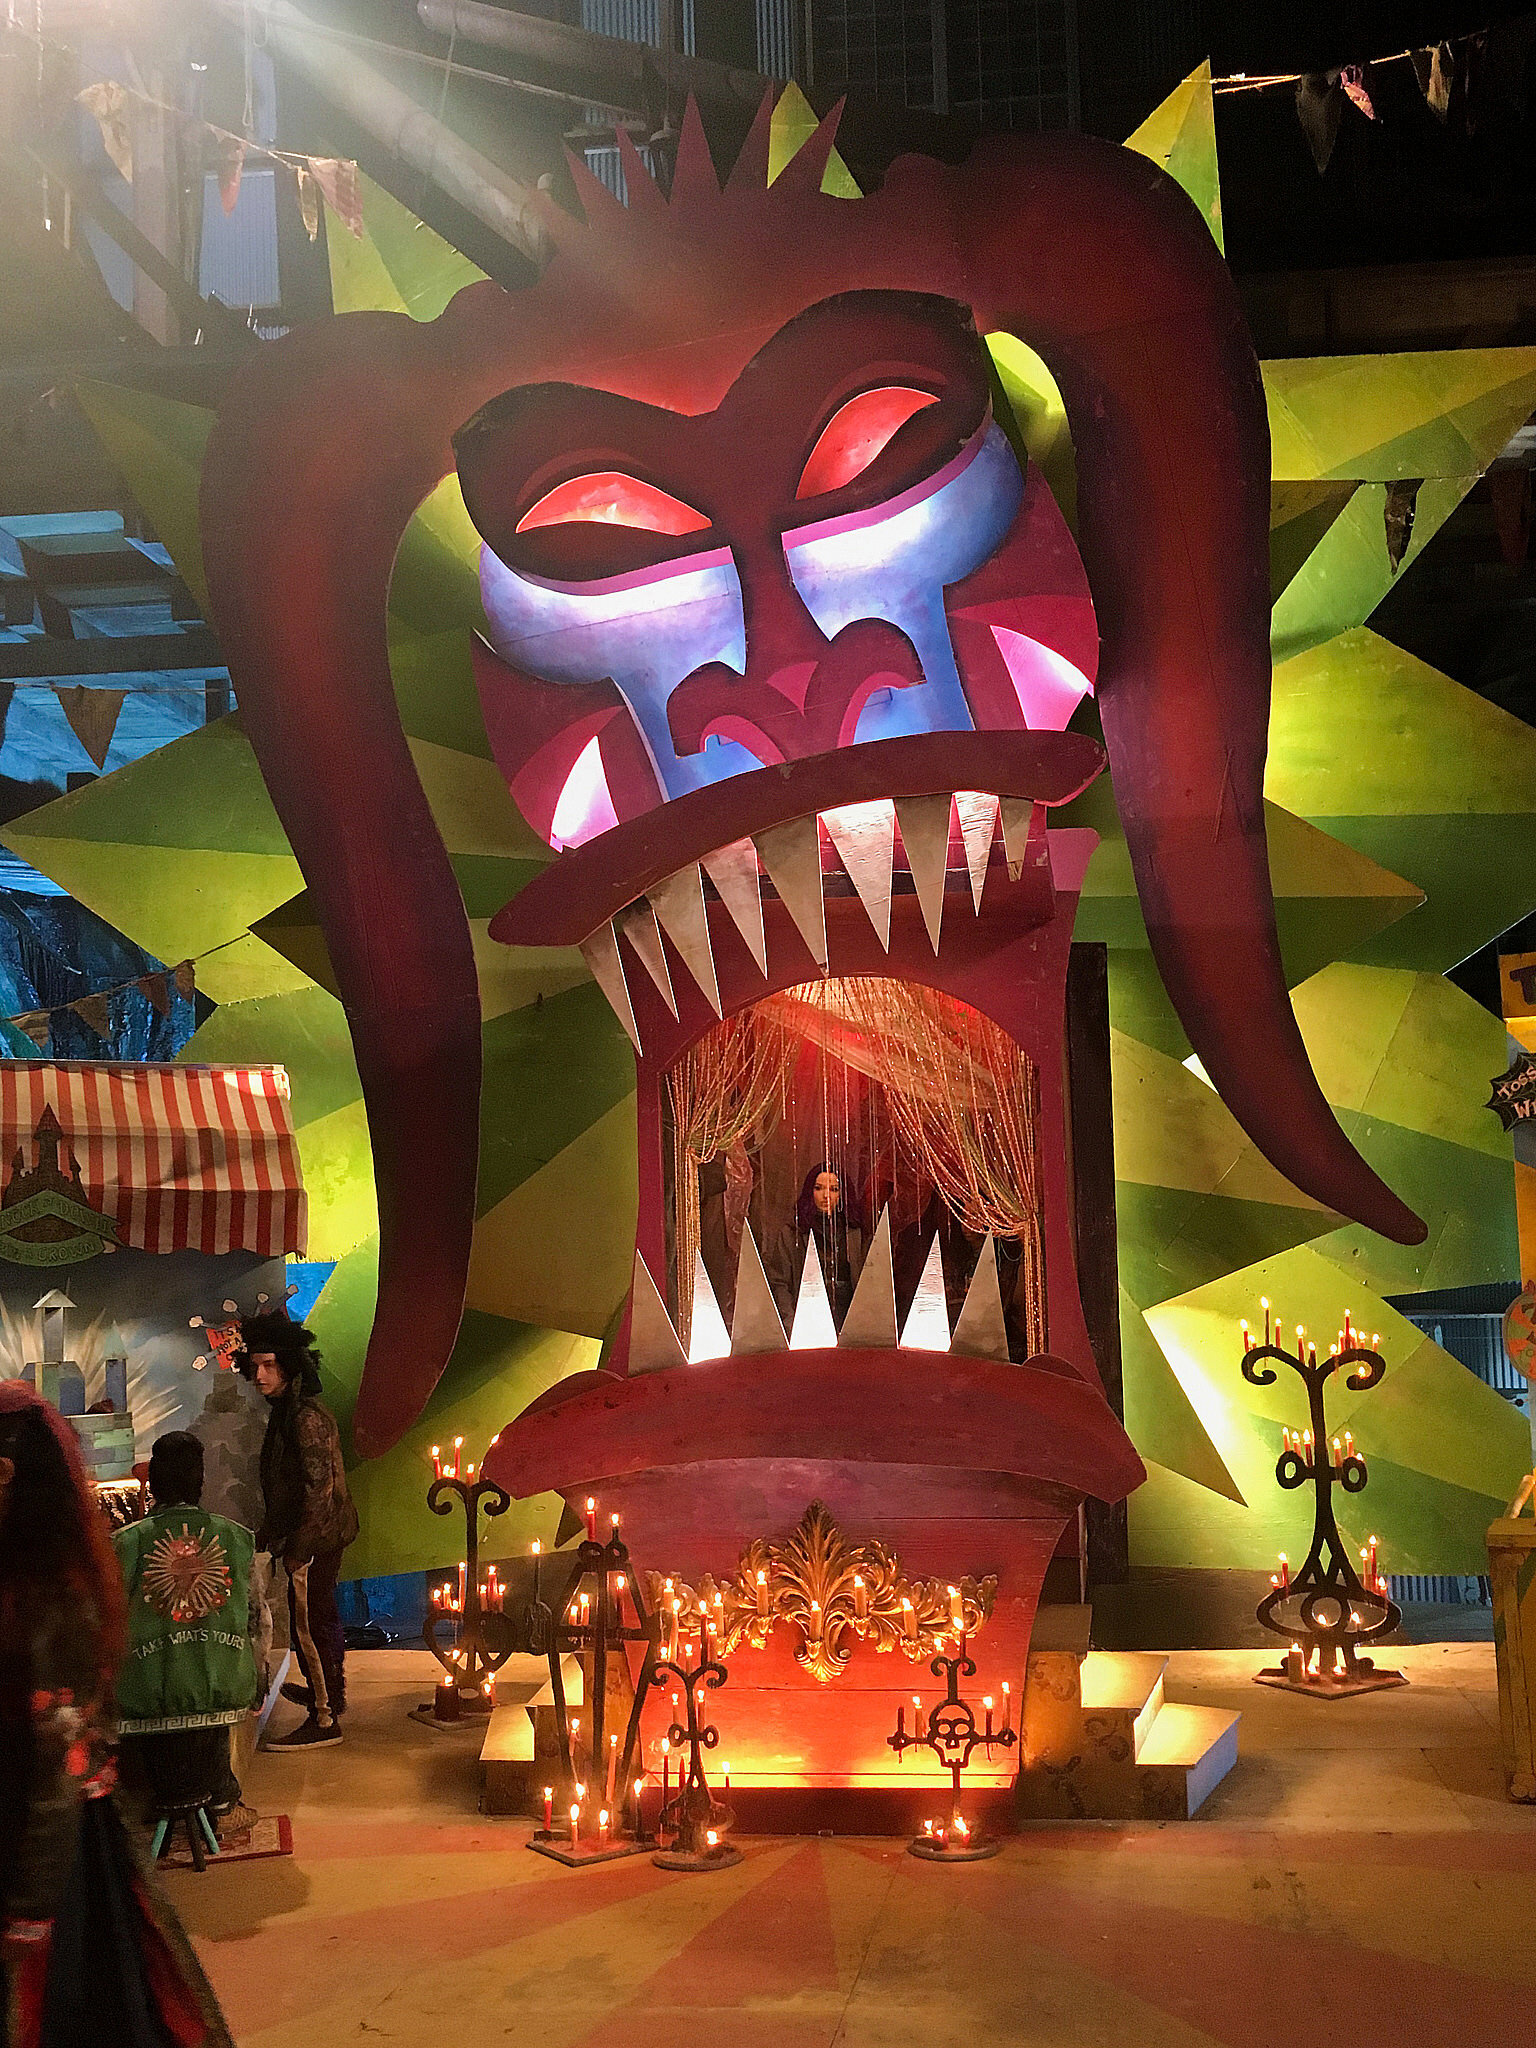 A photo of the completed mask/entrance to Dr. Facilier's arcade on the Isle of the Lost.